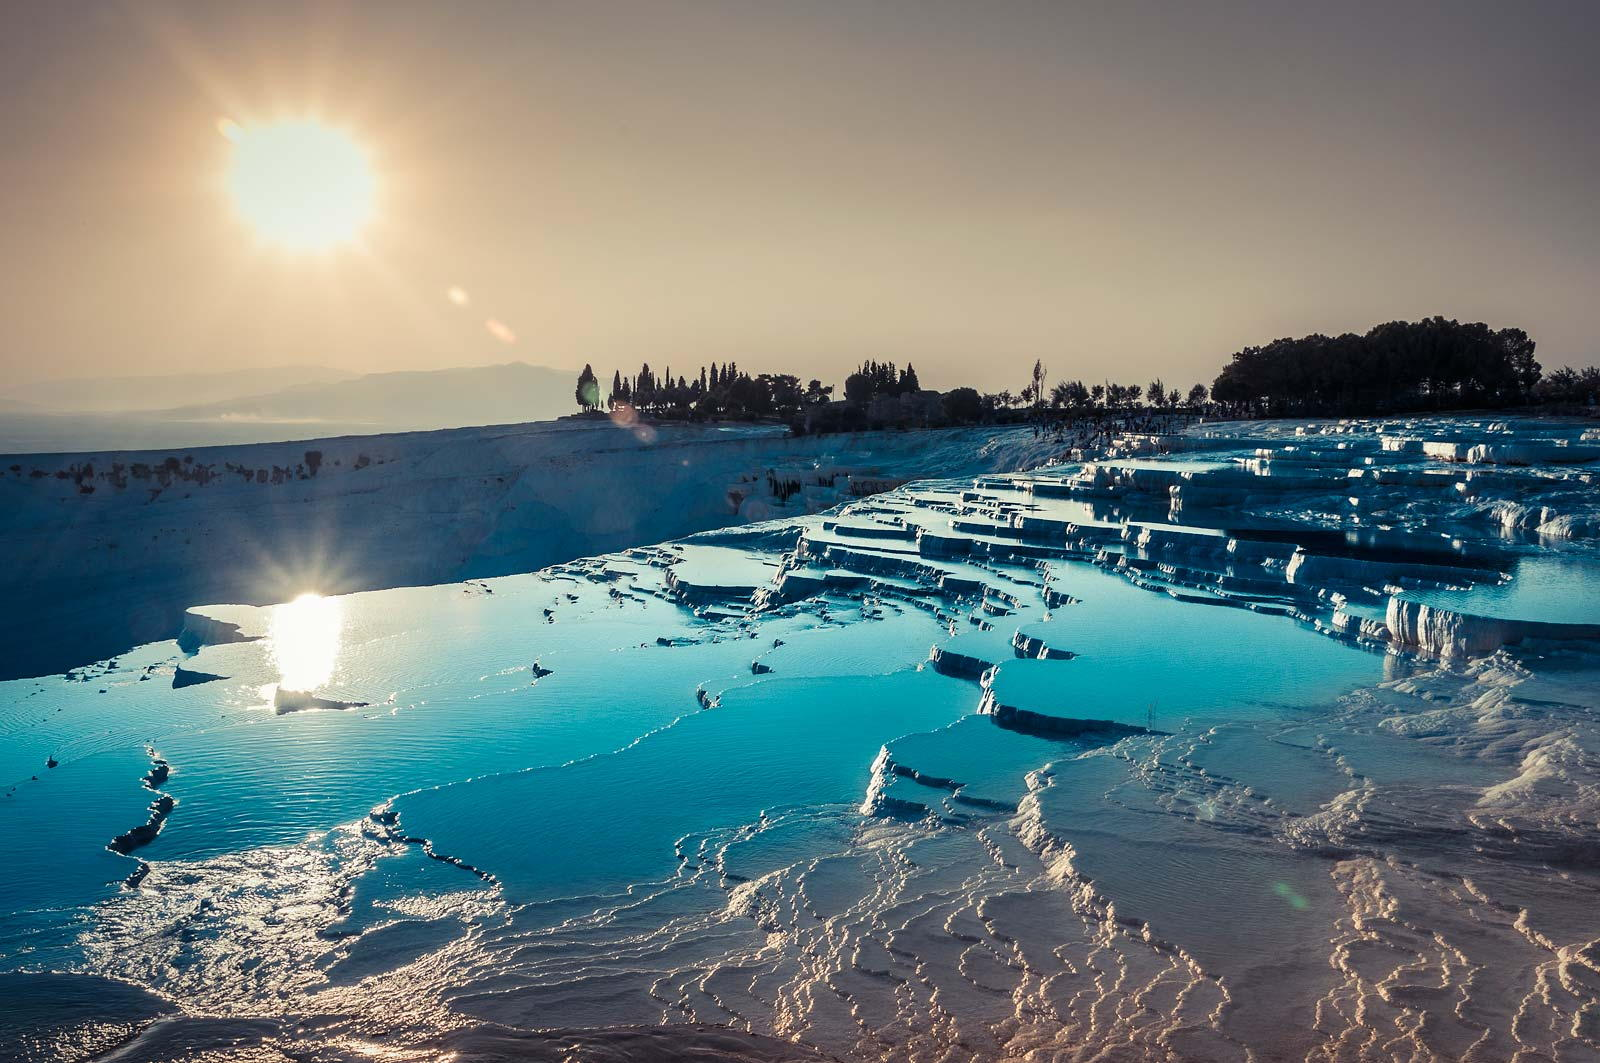 Pamukkale Travetine Terrace, Turkey.